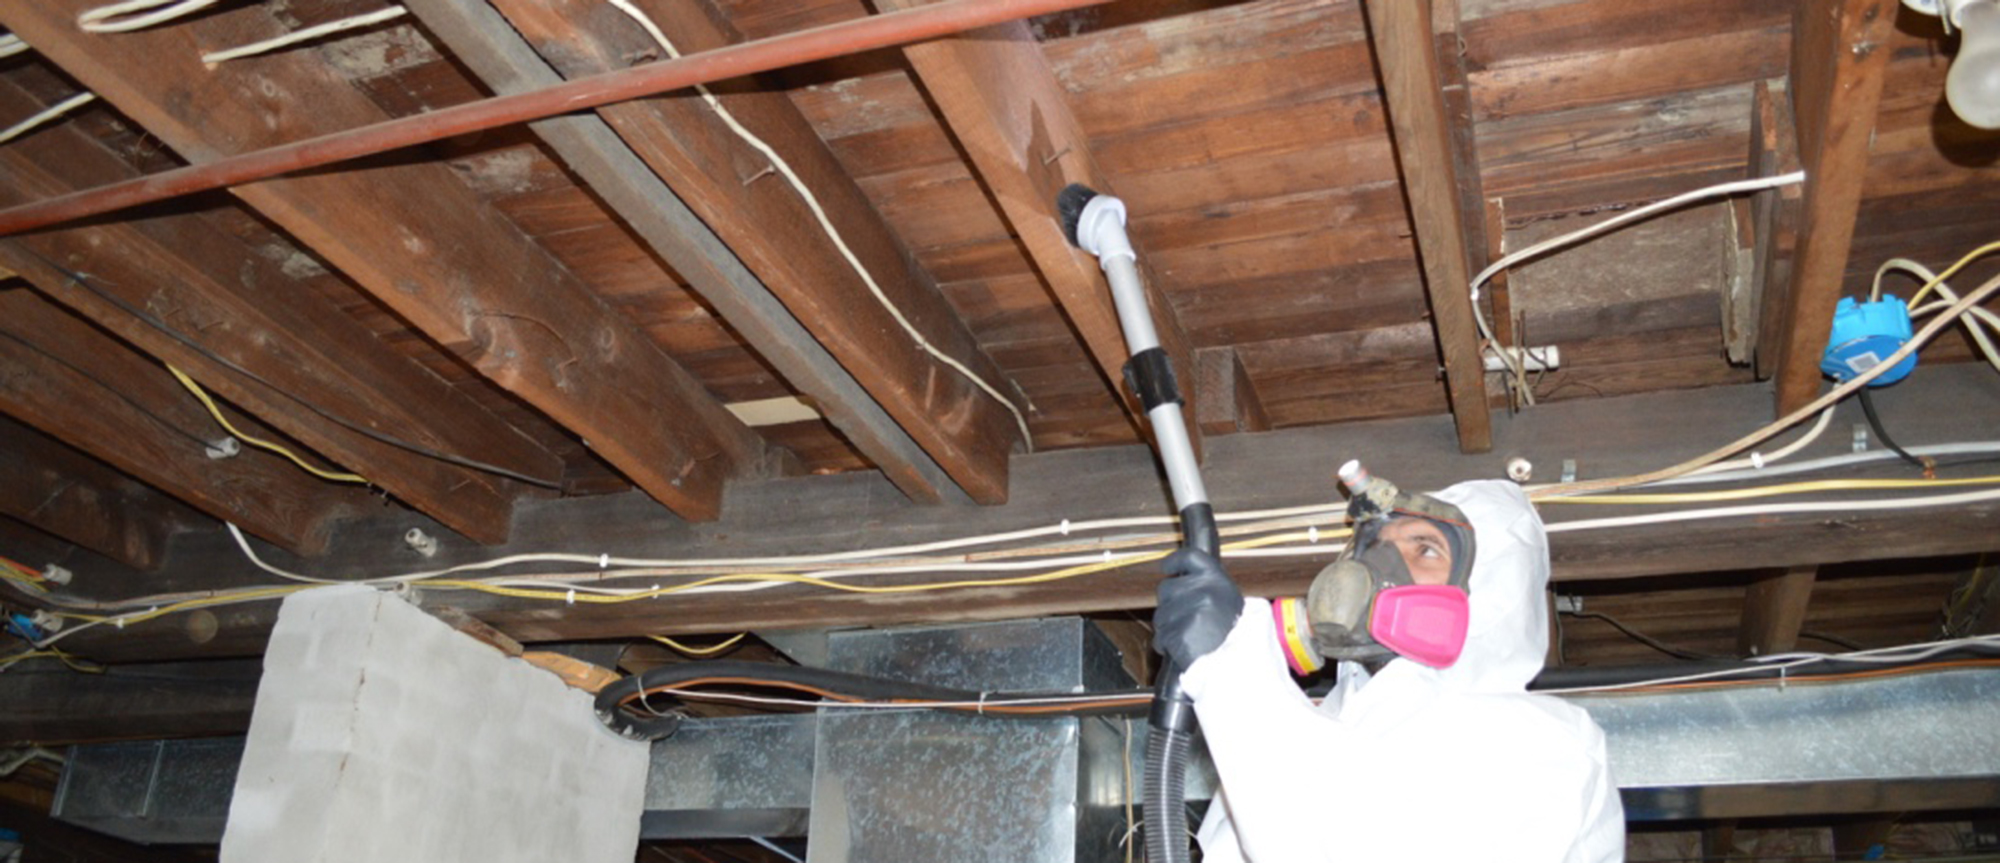 Attic Mold Remediation How To Keep A Mold Free Attic In